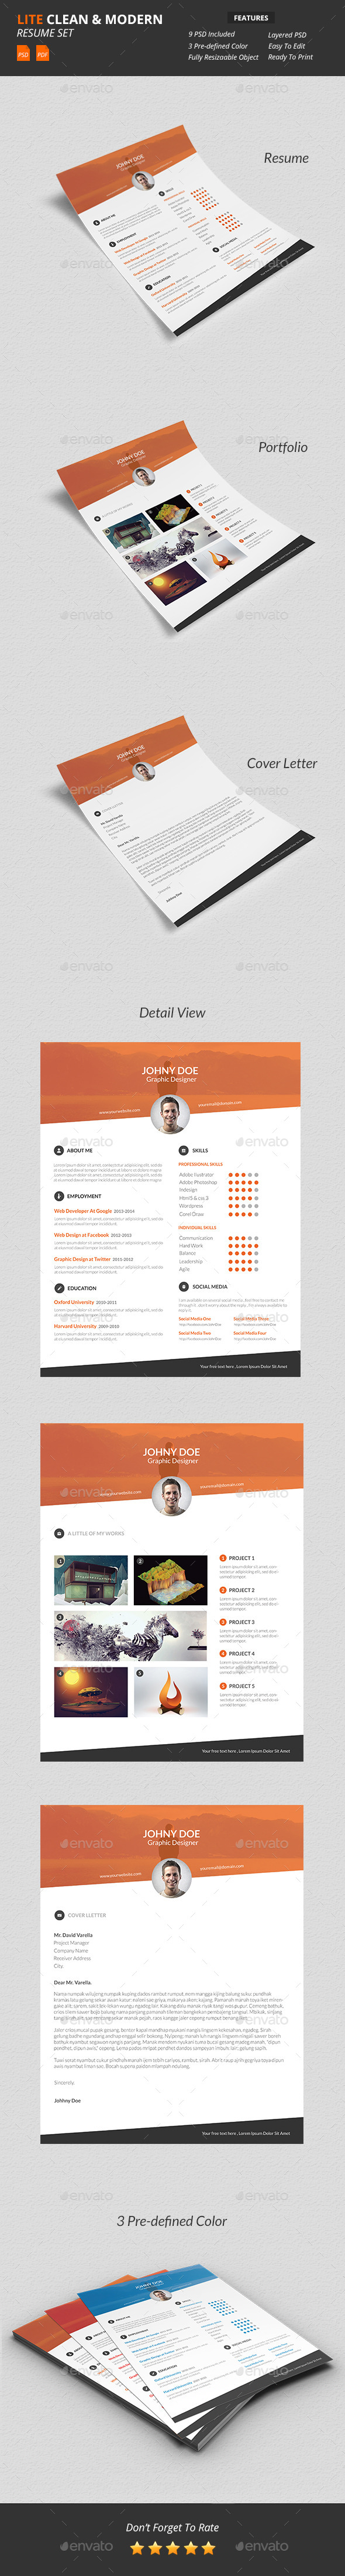 GraphicRiver Lite Clean & Modern Resume Template 9319133